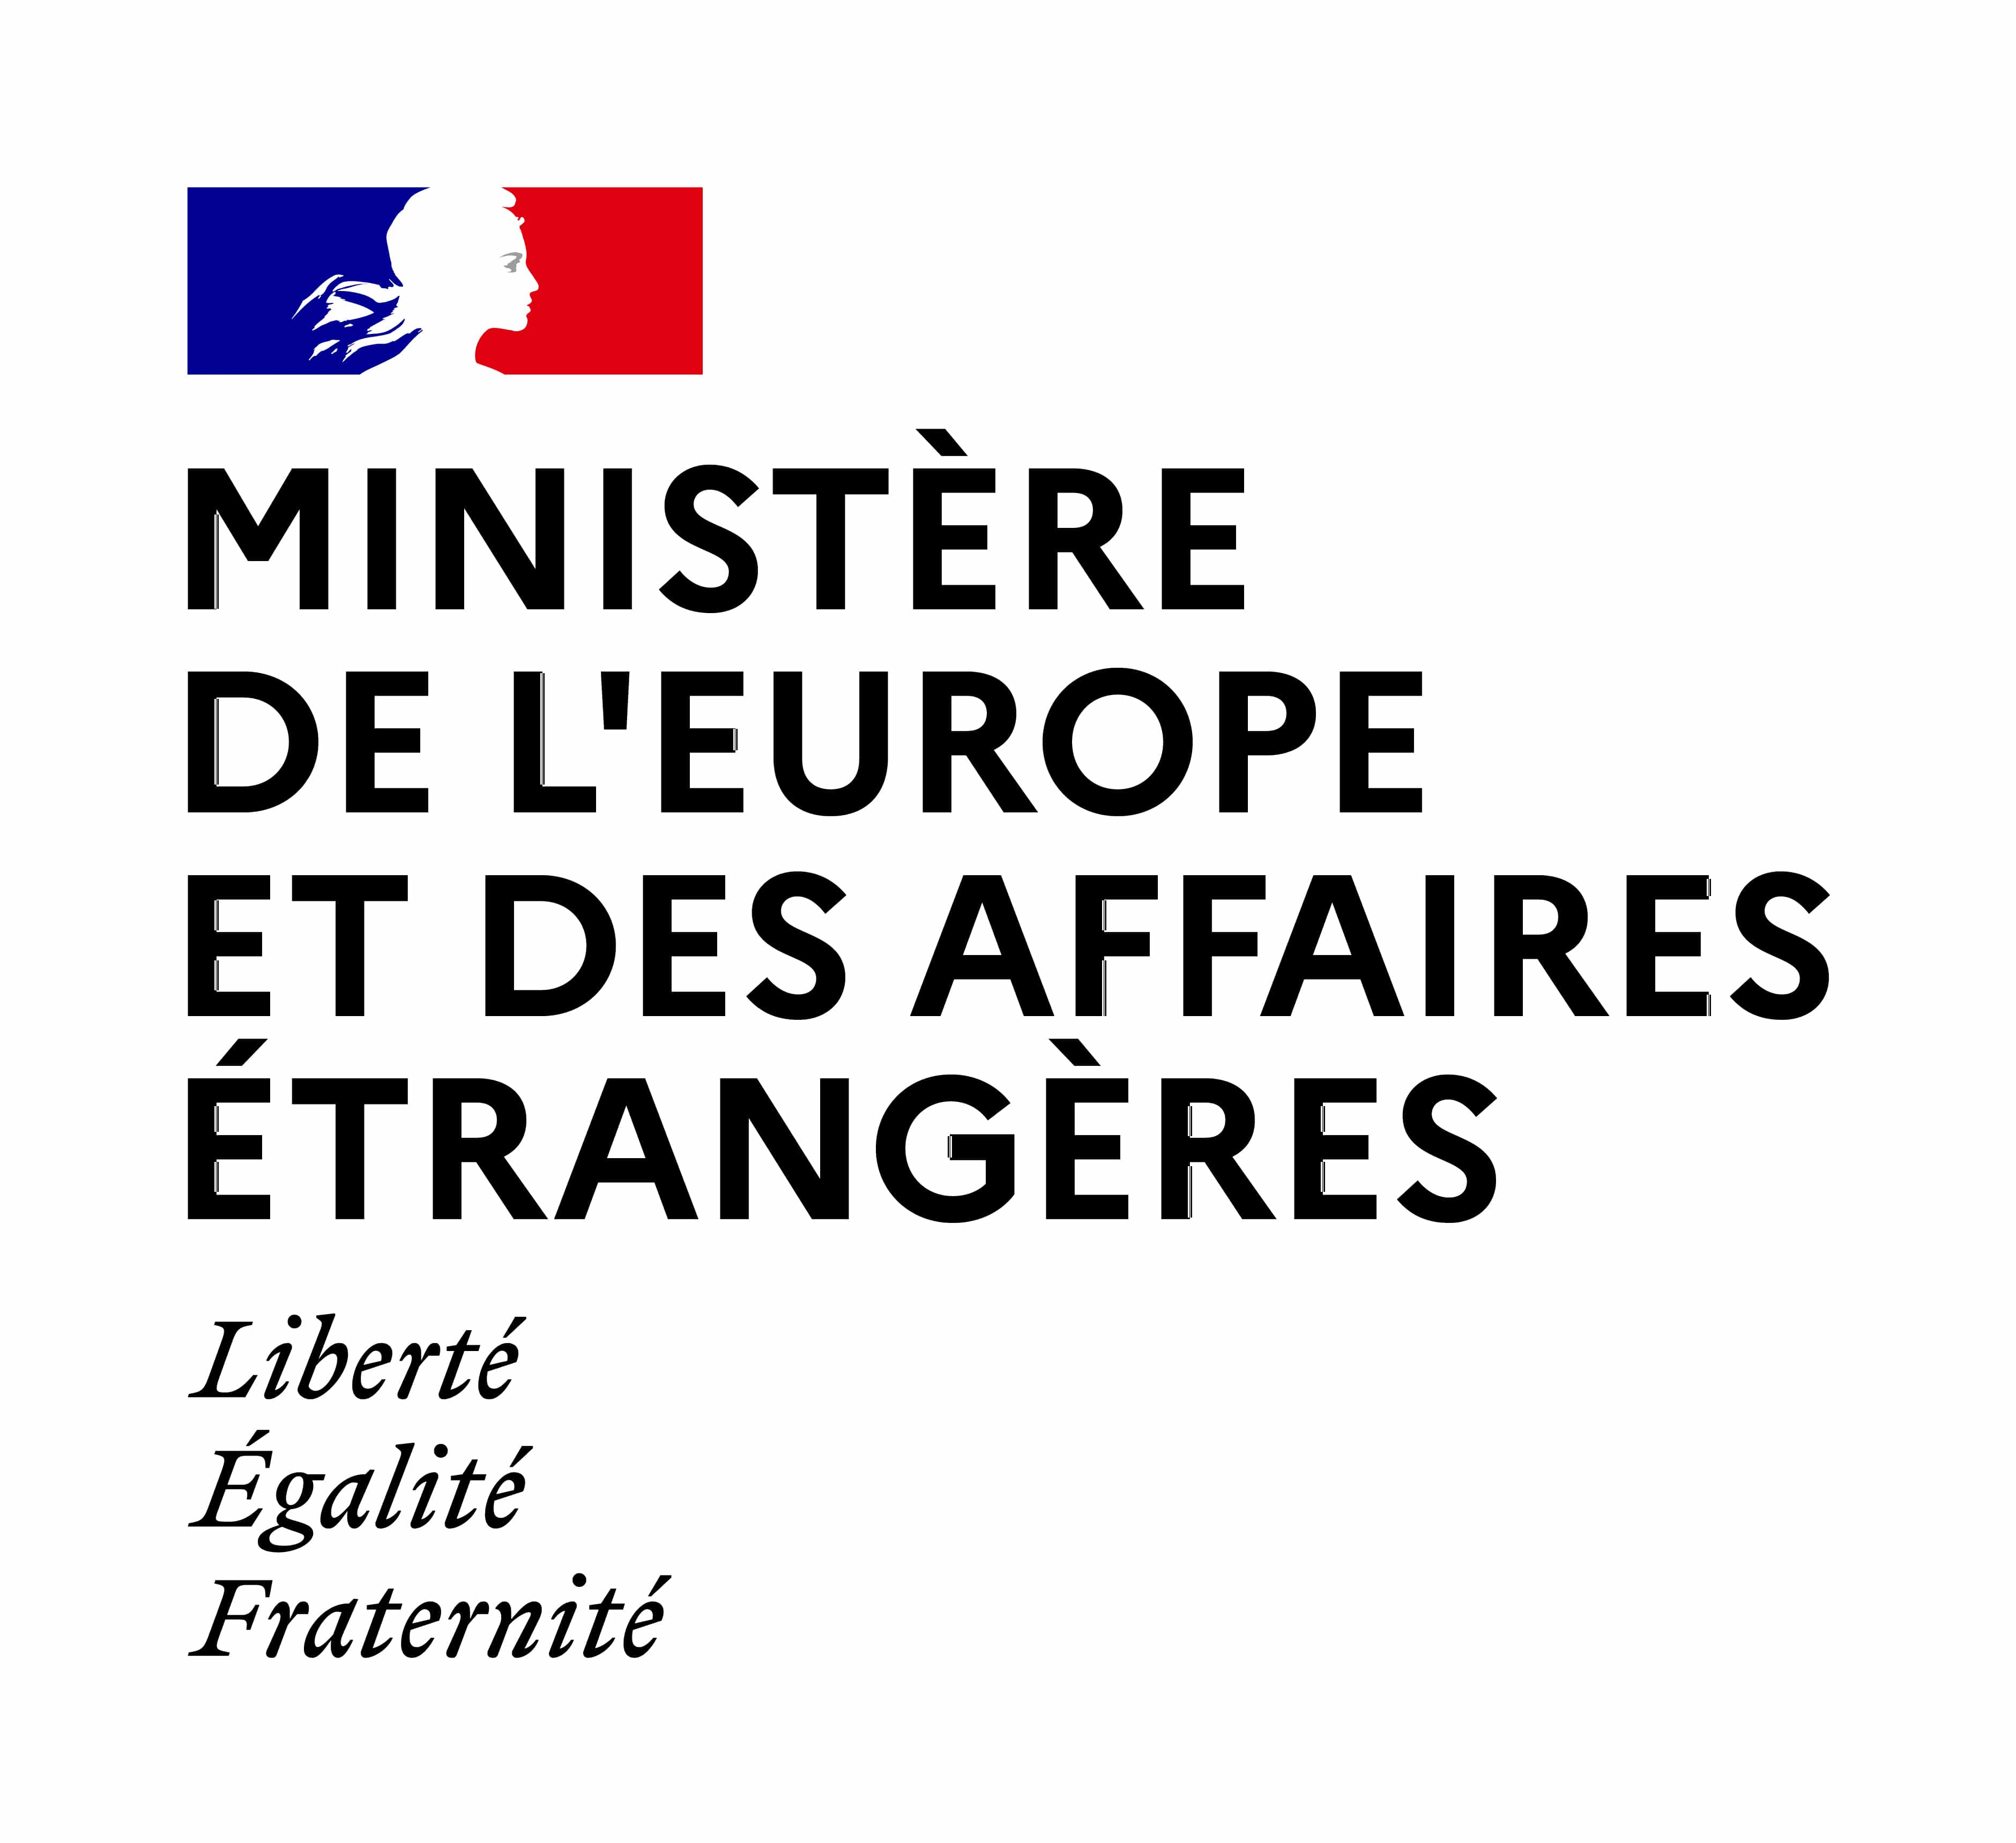 https://parispeaceforum.org/wp-content/uploads/2020/12/MIN_Europe_et_Affaires_Etrangeres_RVB-NEW-2020.jpg